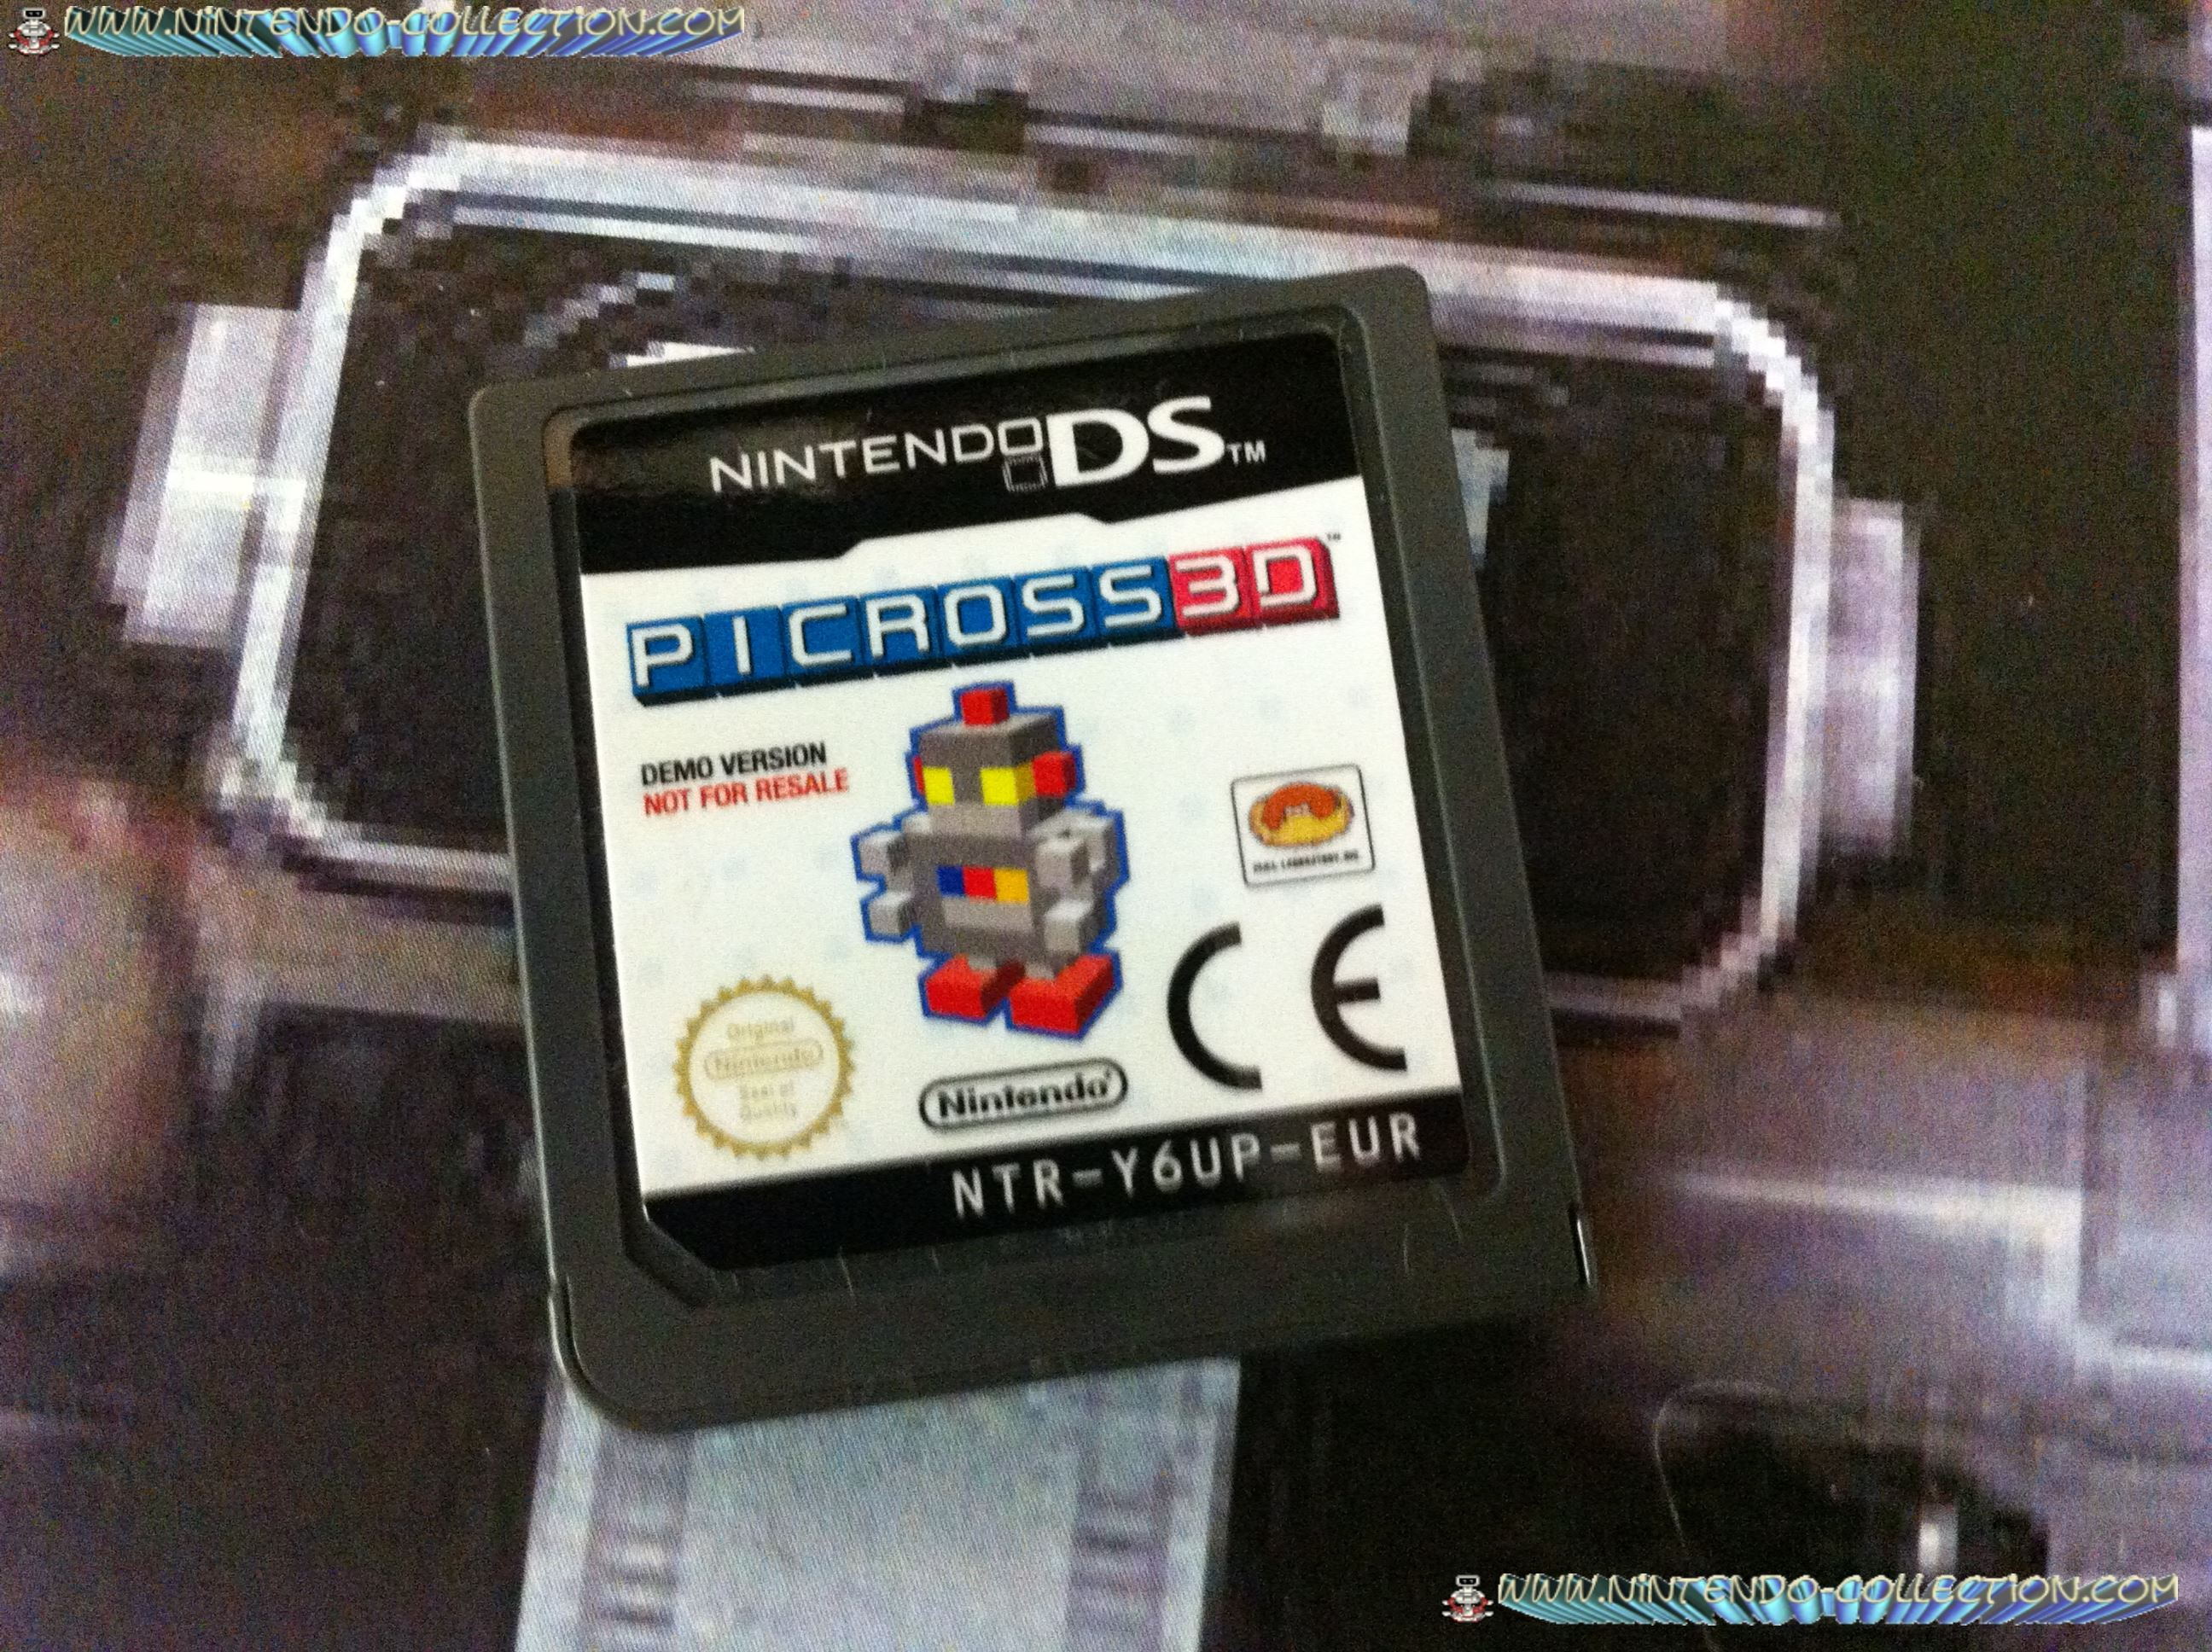 www.nintendo-collection.com - Demo DS 3 DS - Not For Resale - Picross 3D